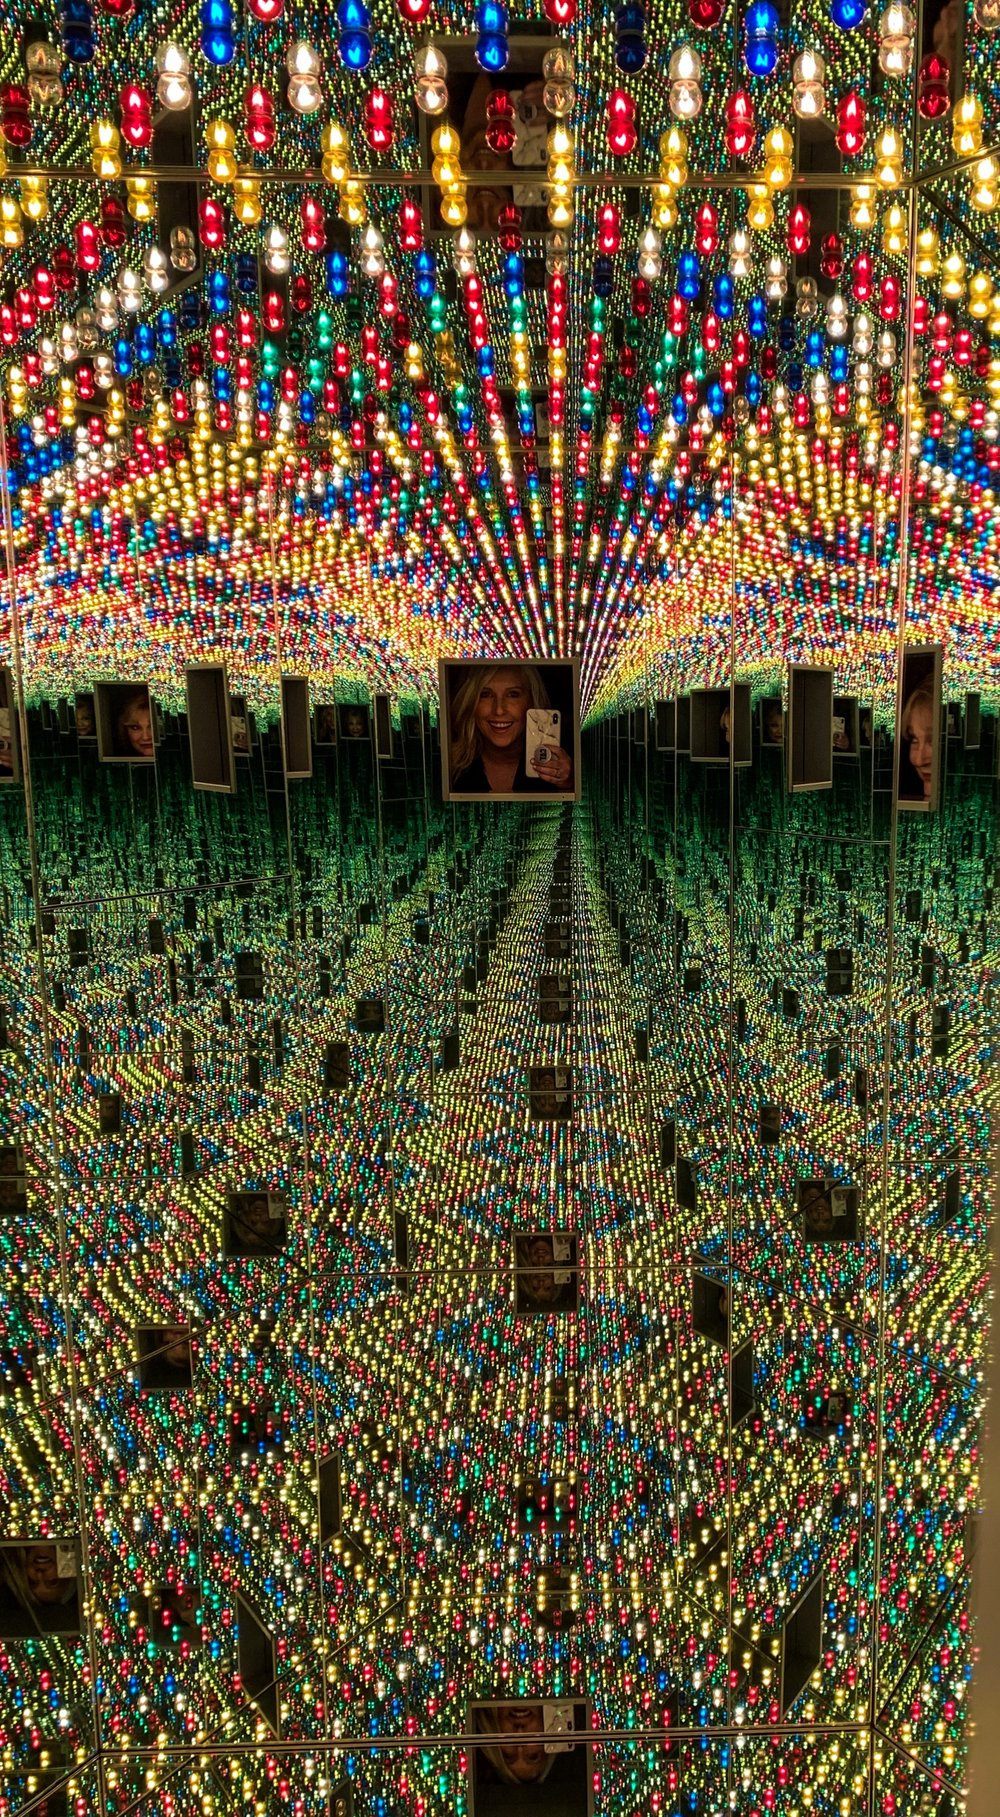 Infinity MIrror Room- Love Forever, 1966/1944